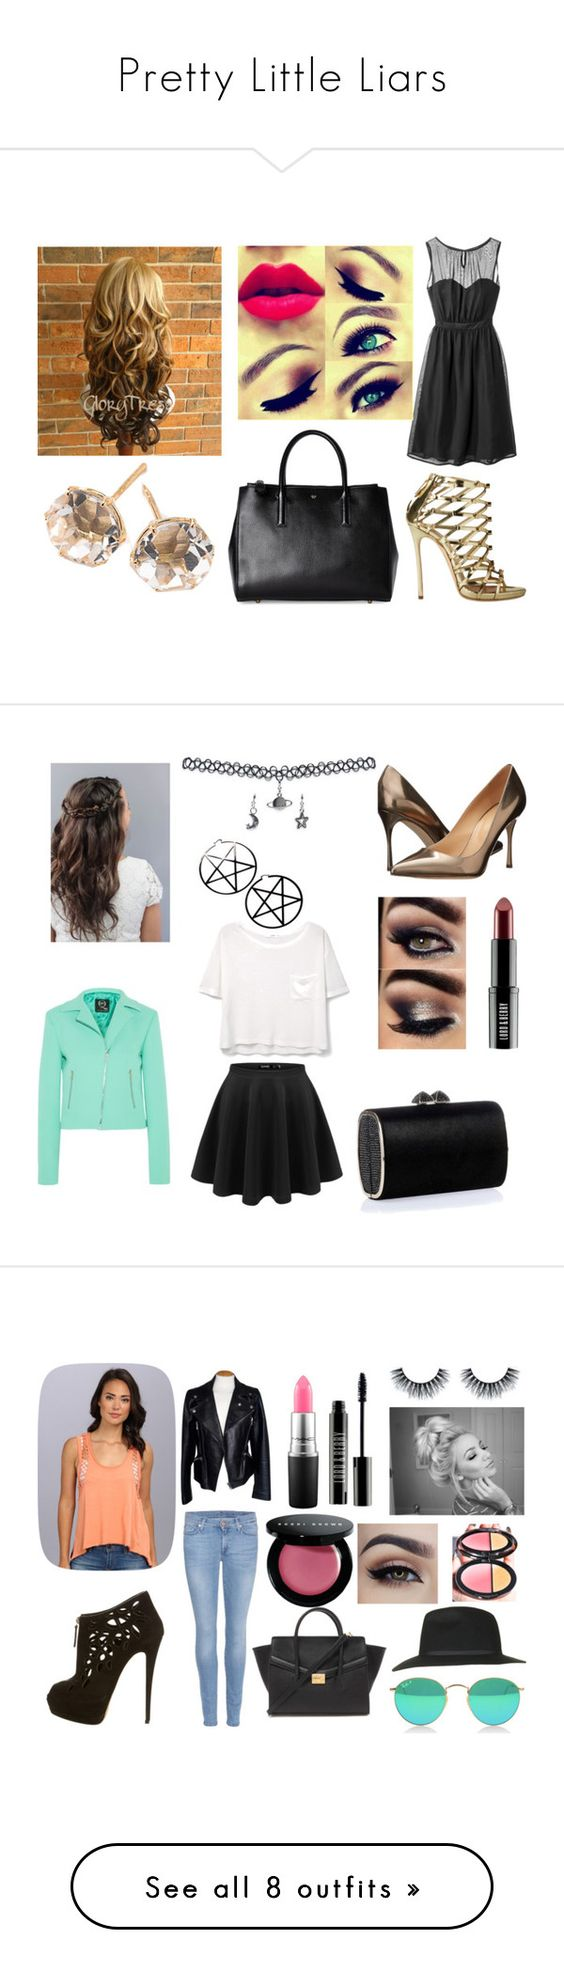 """""""Pretty Little Liars"""" by amybeliebs ❤ liked on Polyvore featuring Tevolio, Anya Hindmarch, Dsquared2, Ippolita, Sergio Rossi, Lord & Berry, Jimmy Choo, MANGO, McQ by Alexander McQueen and Wet Seal"""